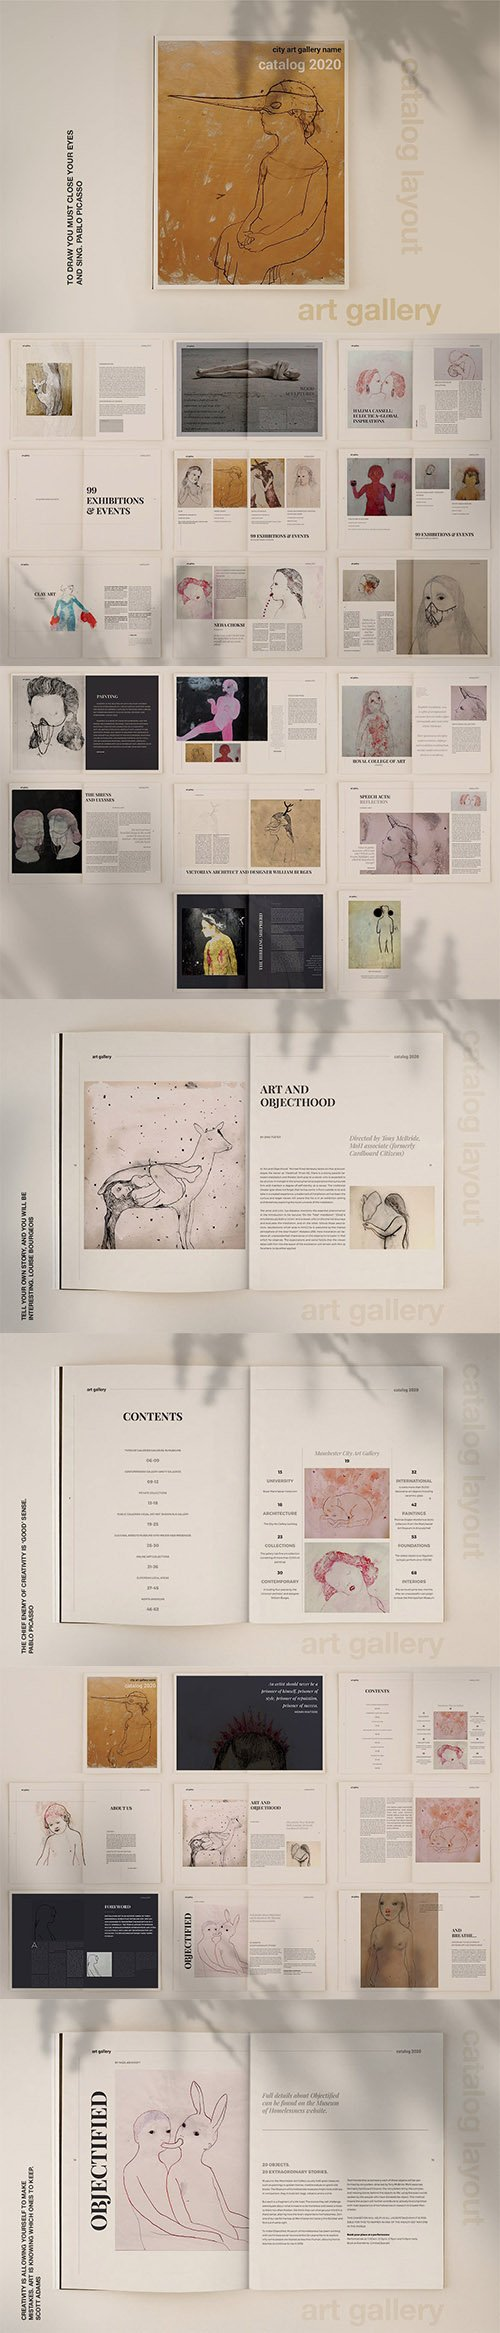 Art Gallery Catalog 3486246